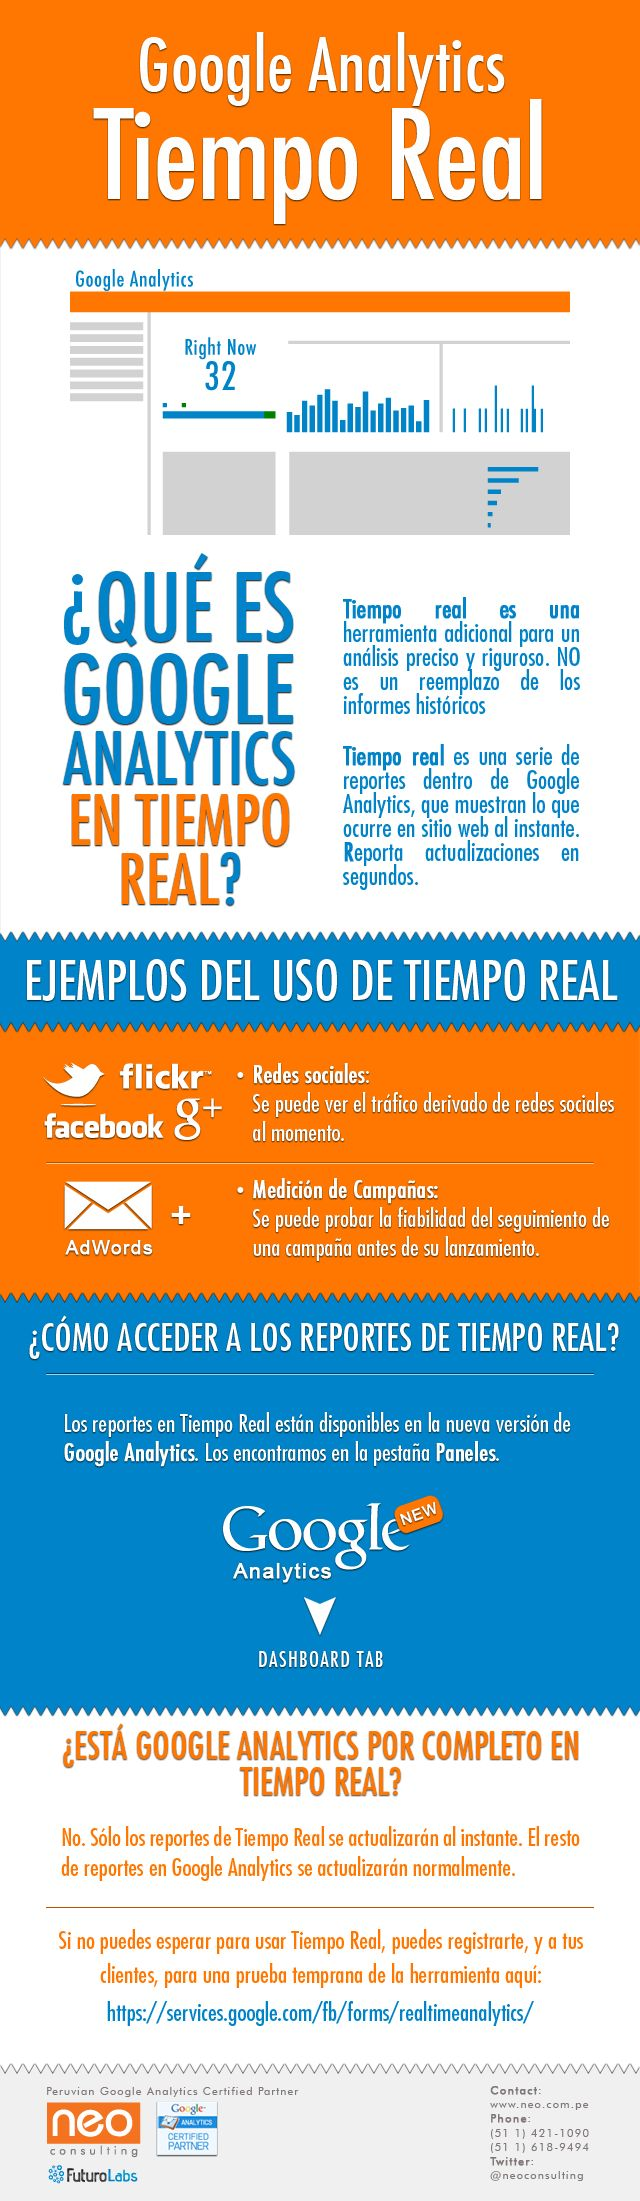 Google Analytics en tiempo real #infografia #internet